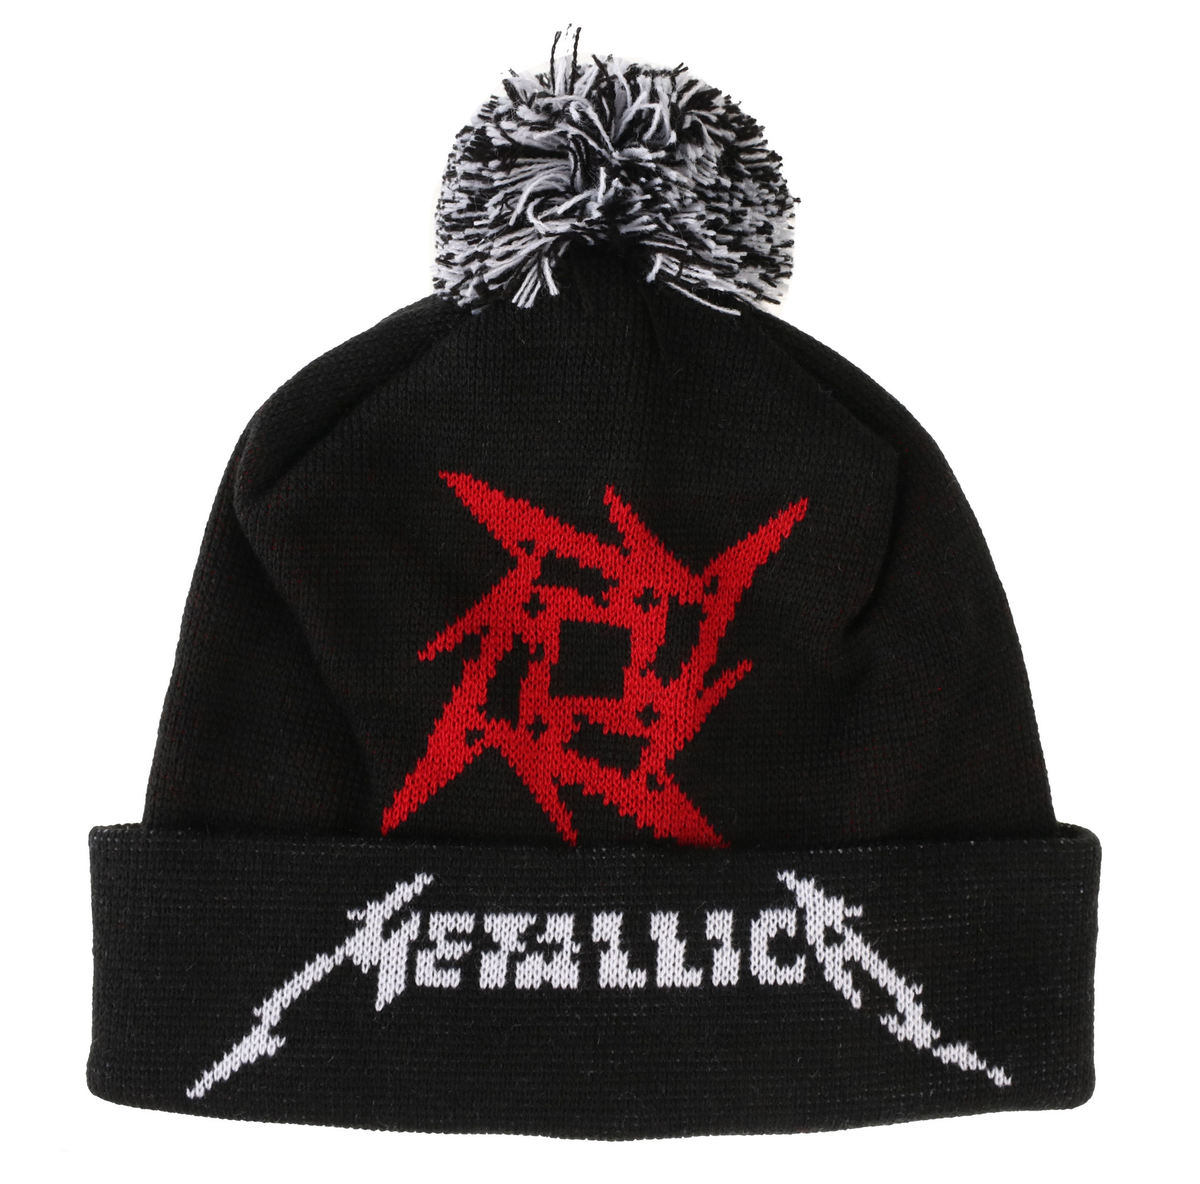 kulich Metallica - Glitch Star Logo - Black Woven Bobble - RTMTLBEBGLI